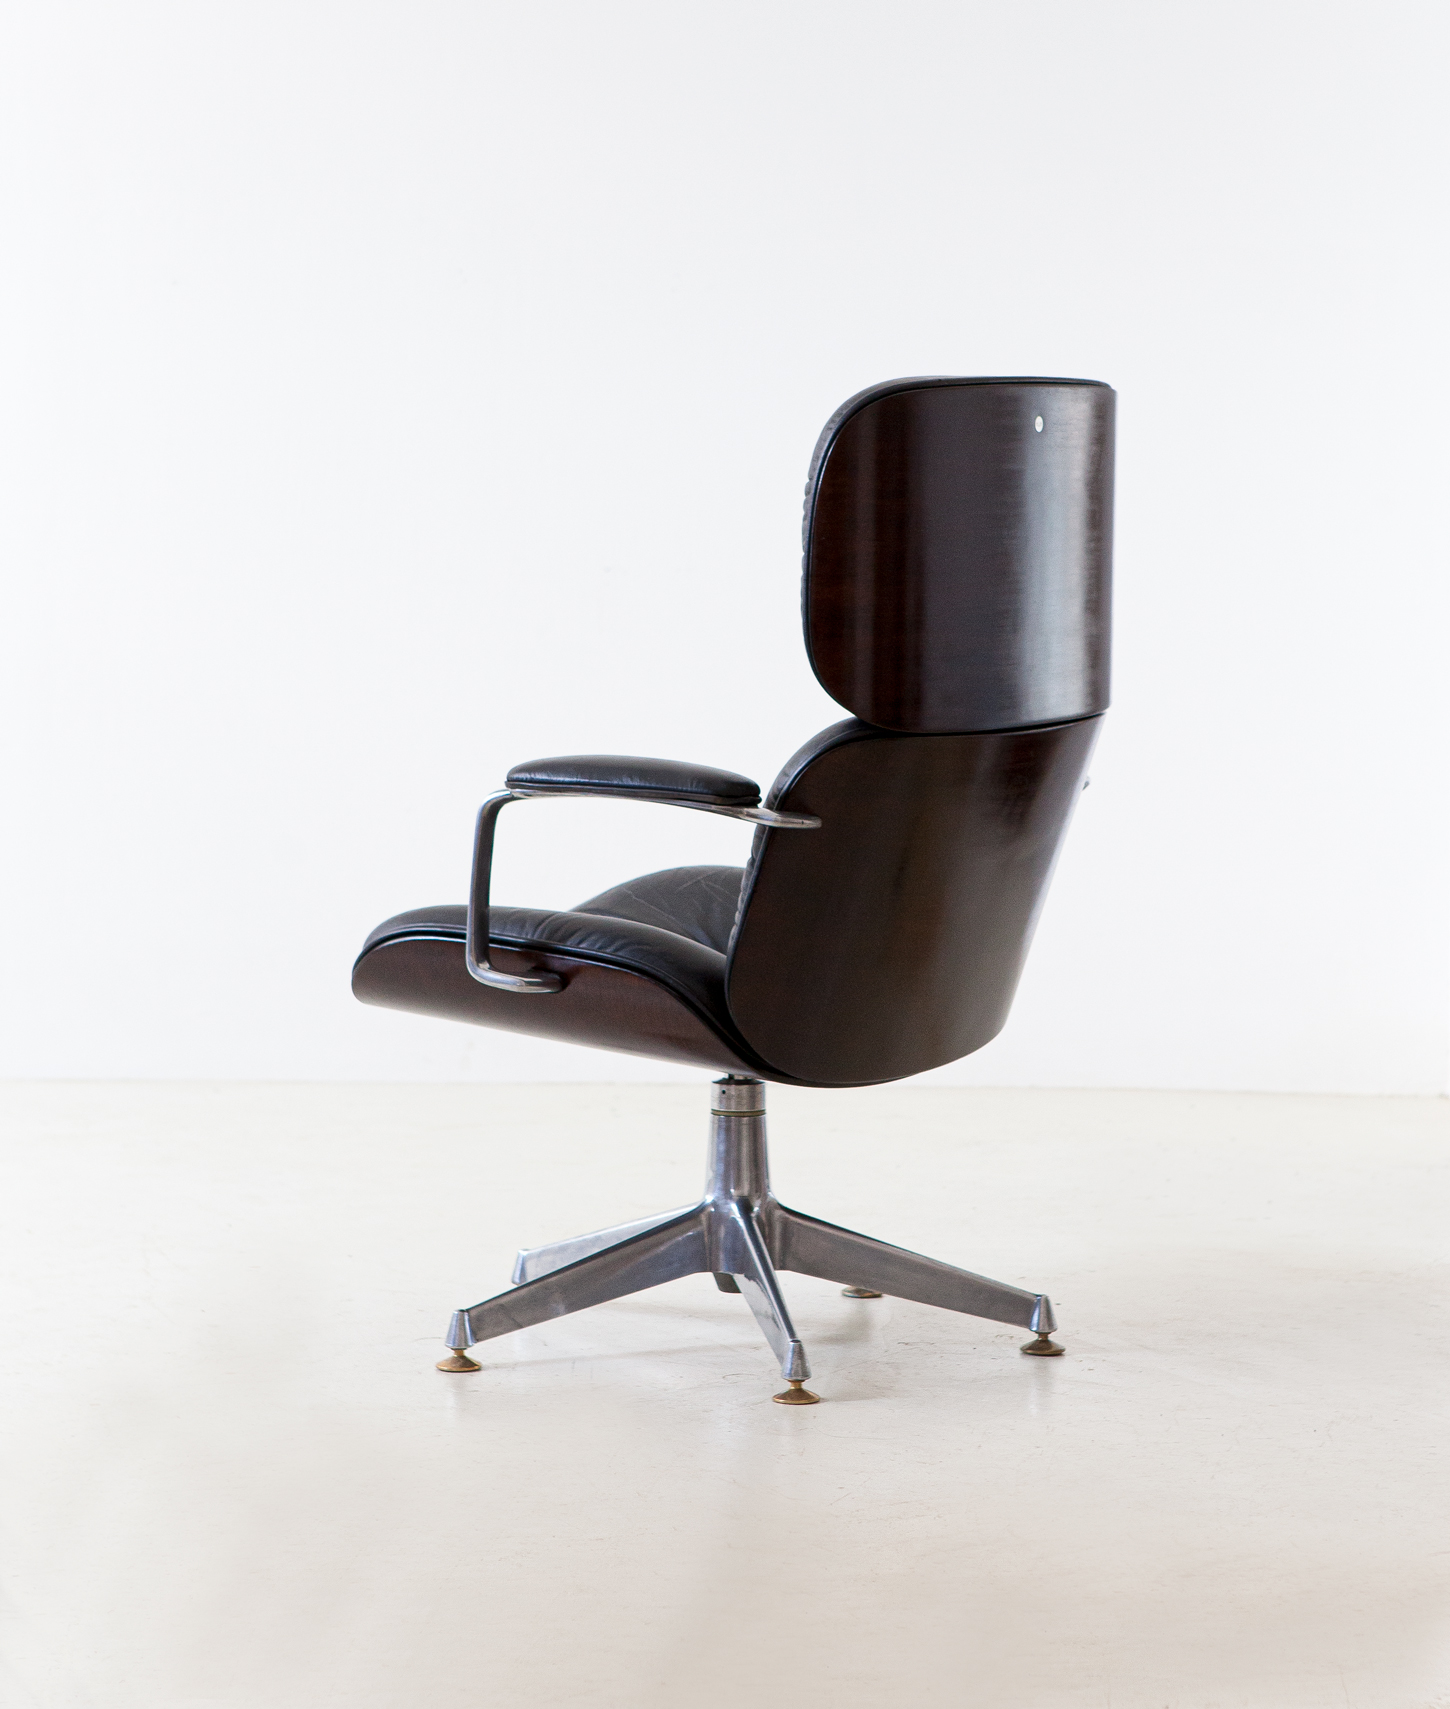 1950s-executive-desk-chair-by-Ico-Parisi-for-M.i.M.-2-SE332